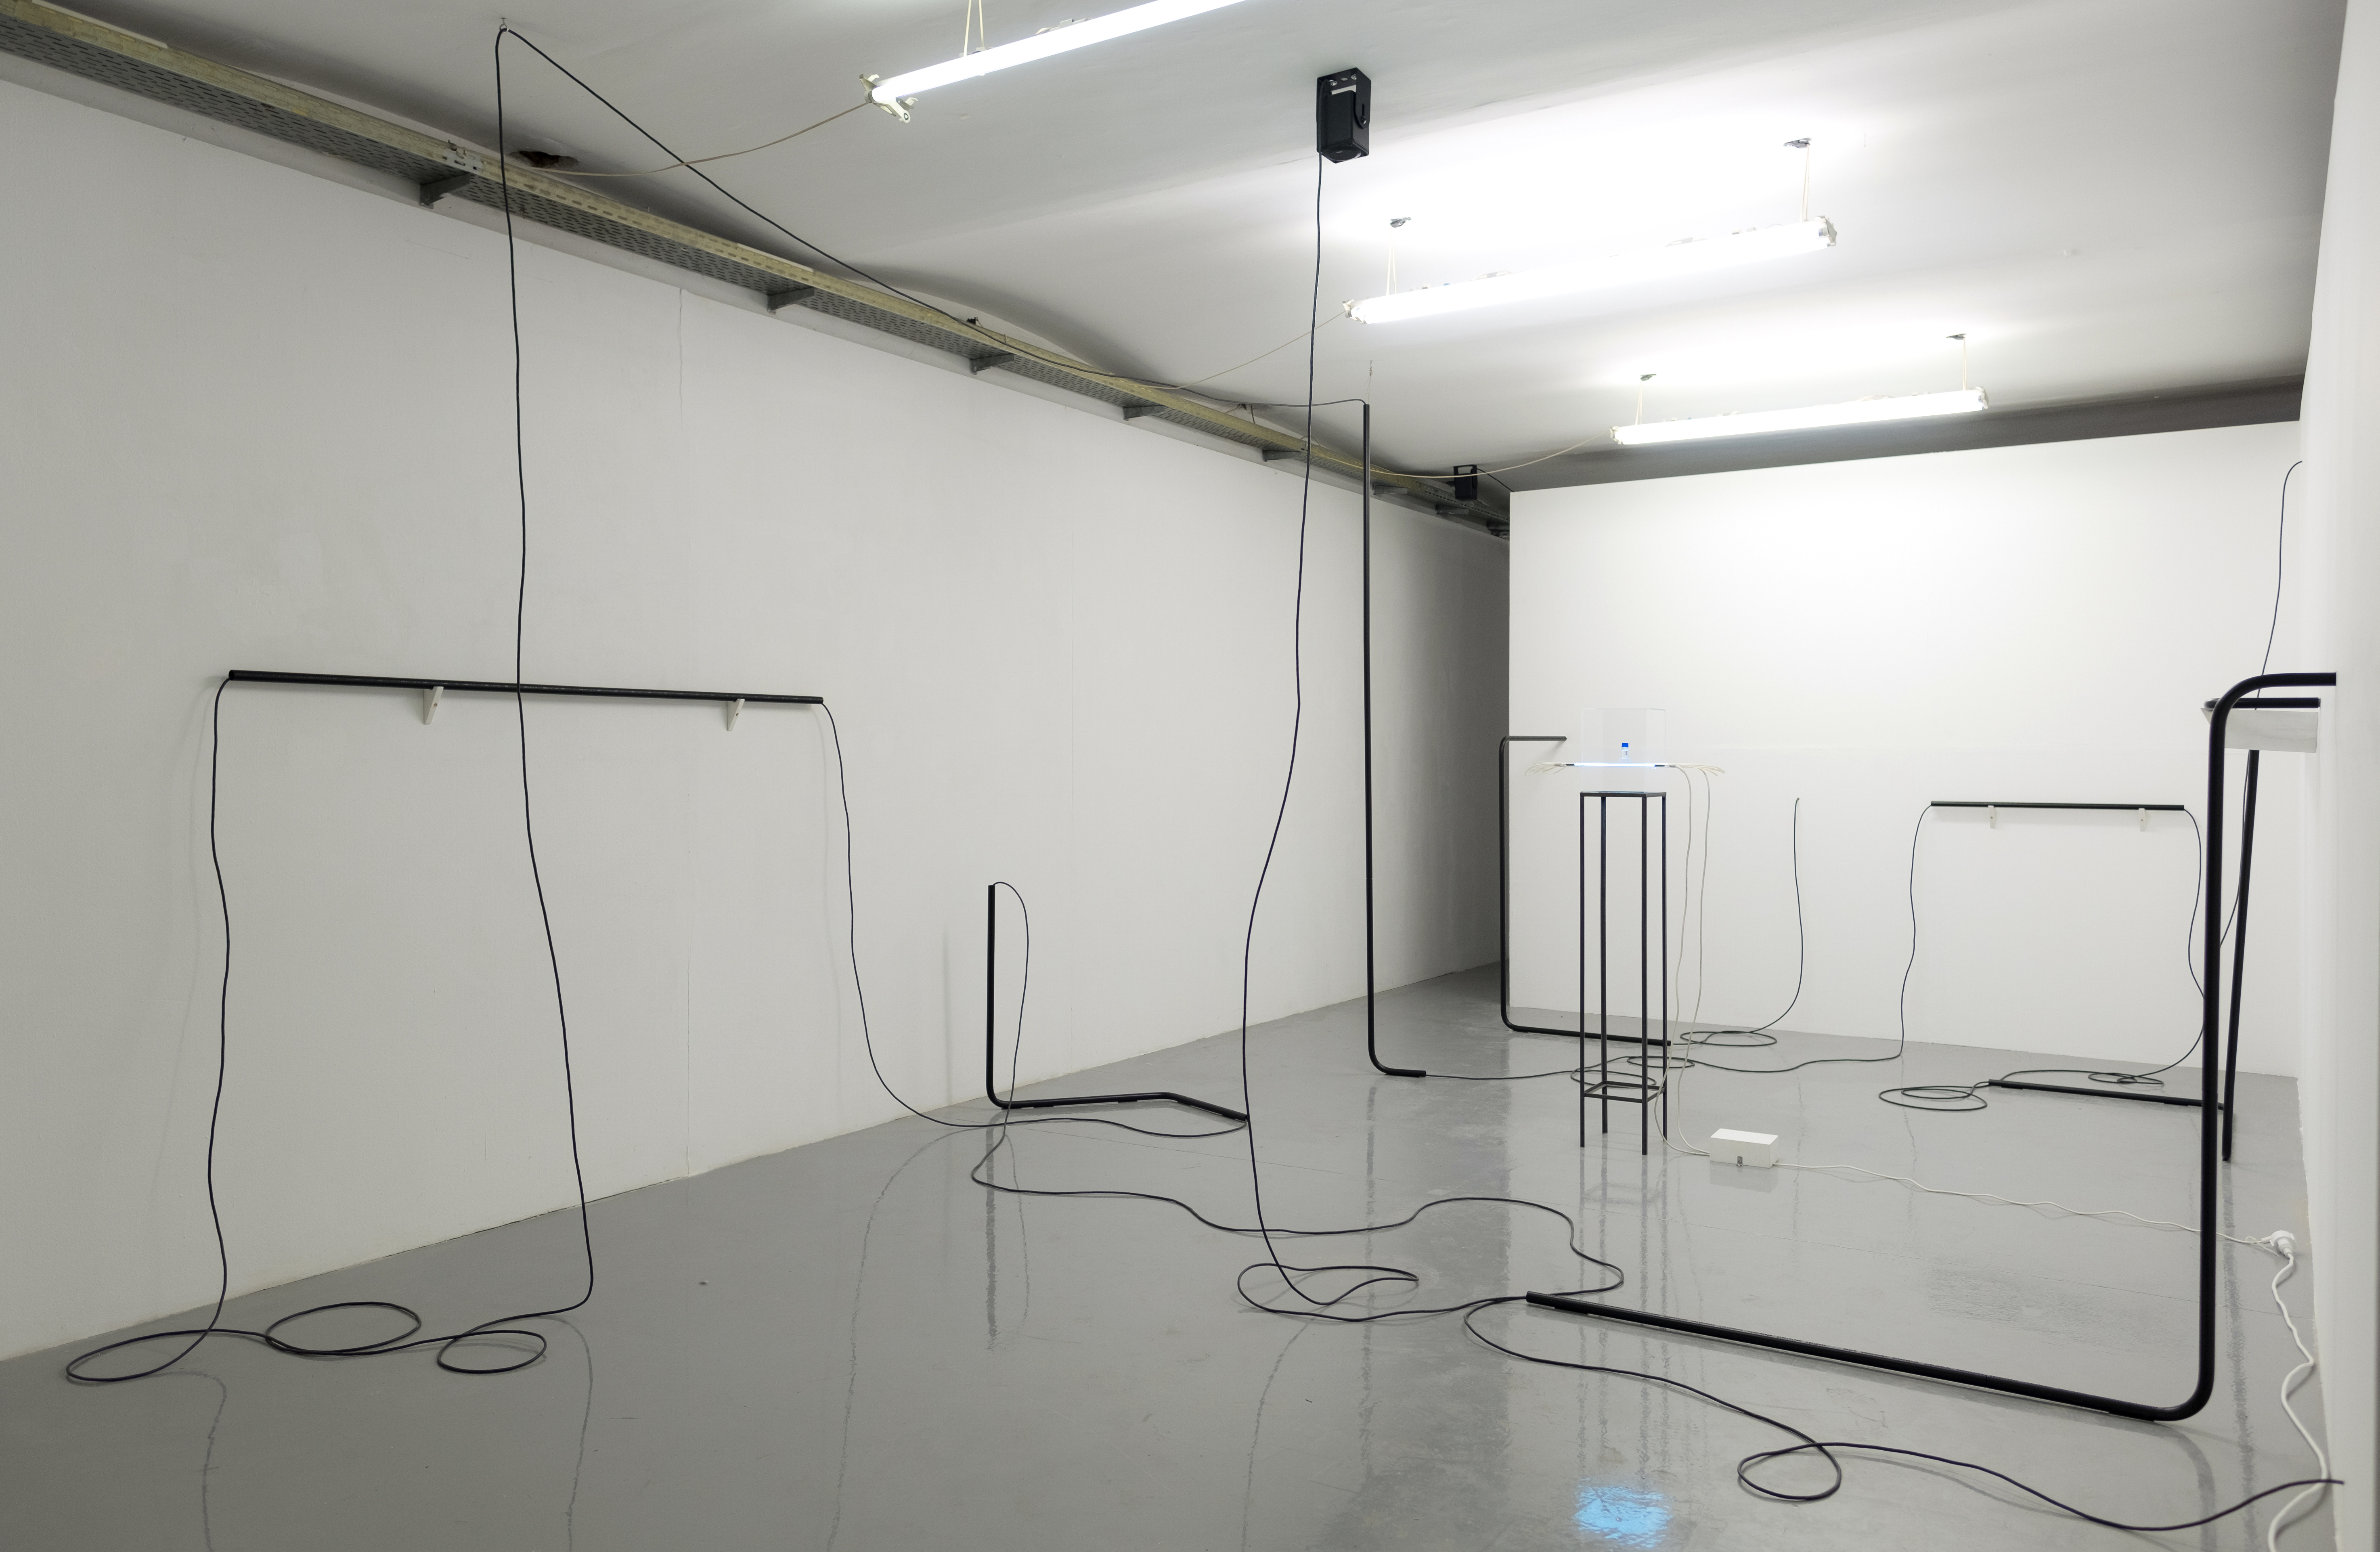 Installationview of room #2 showing artwork/installation by Dominique Koch